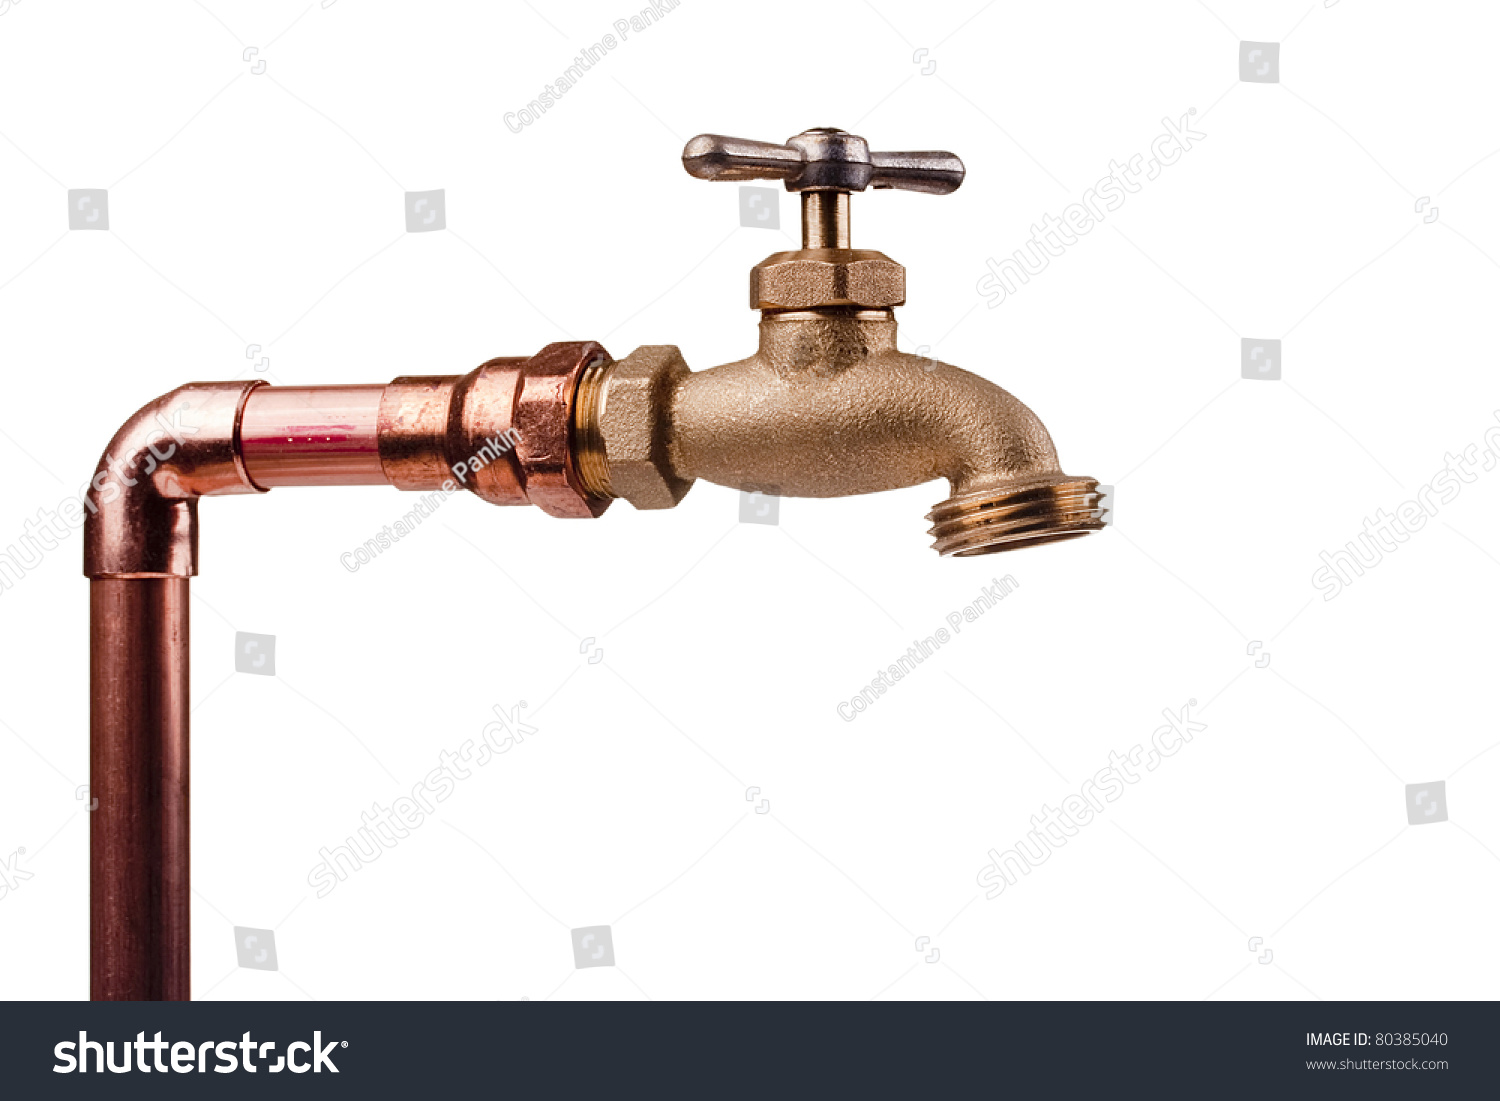 Bronze Faucet Attached Water System Copper Stock Photo